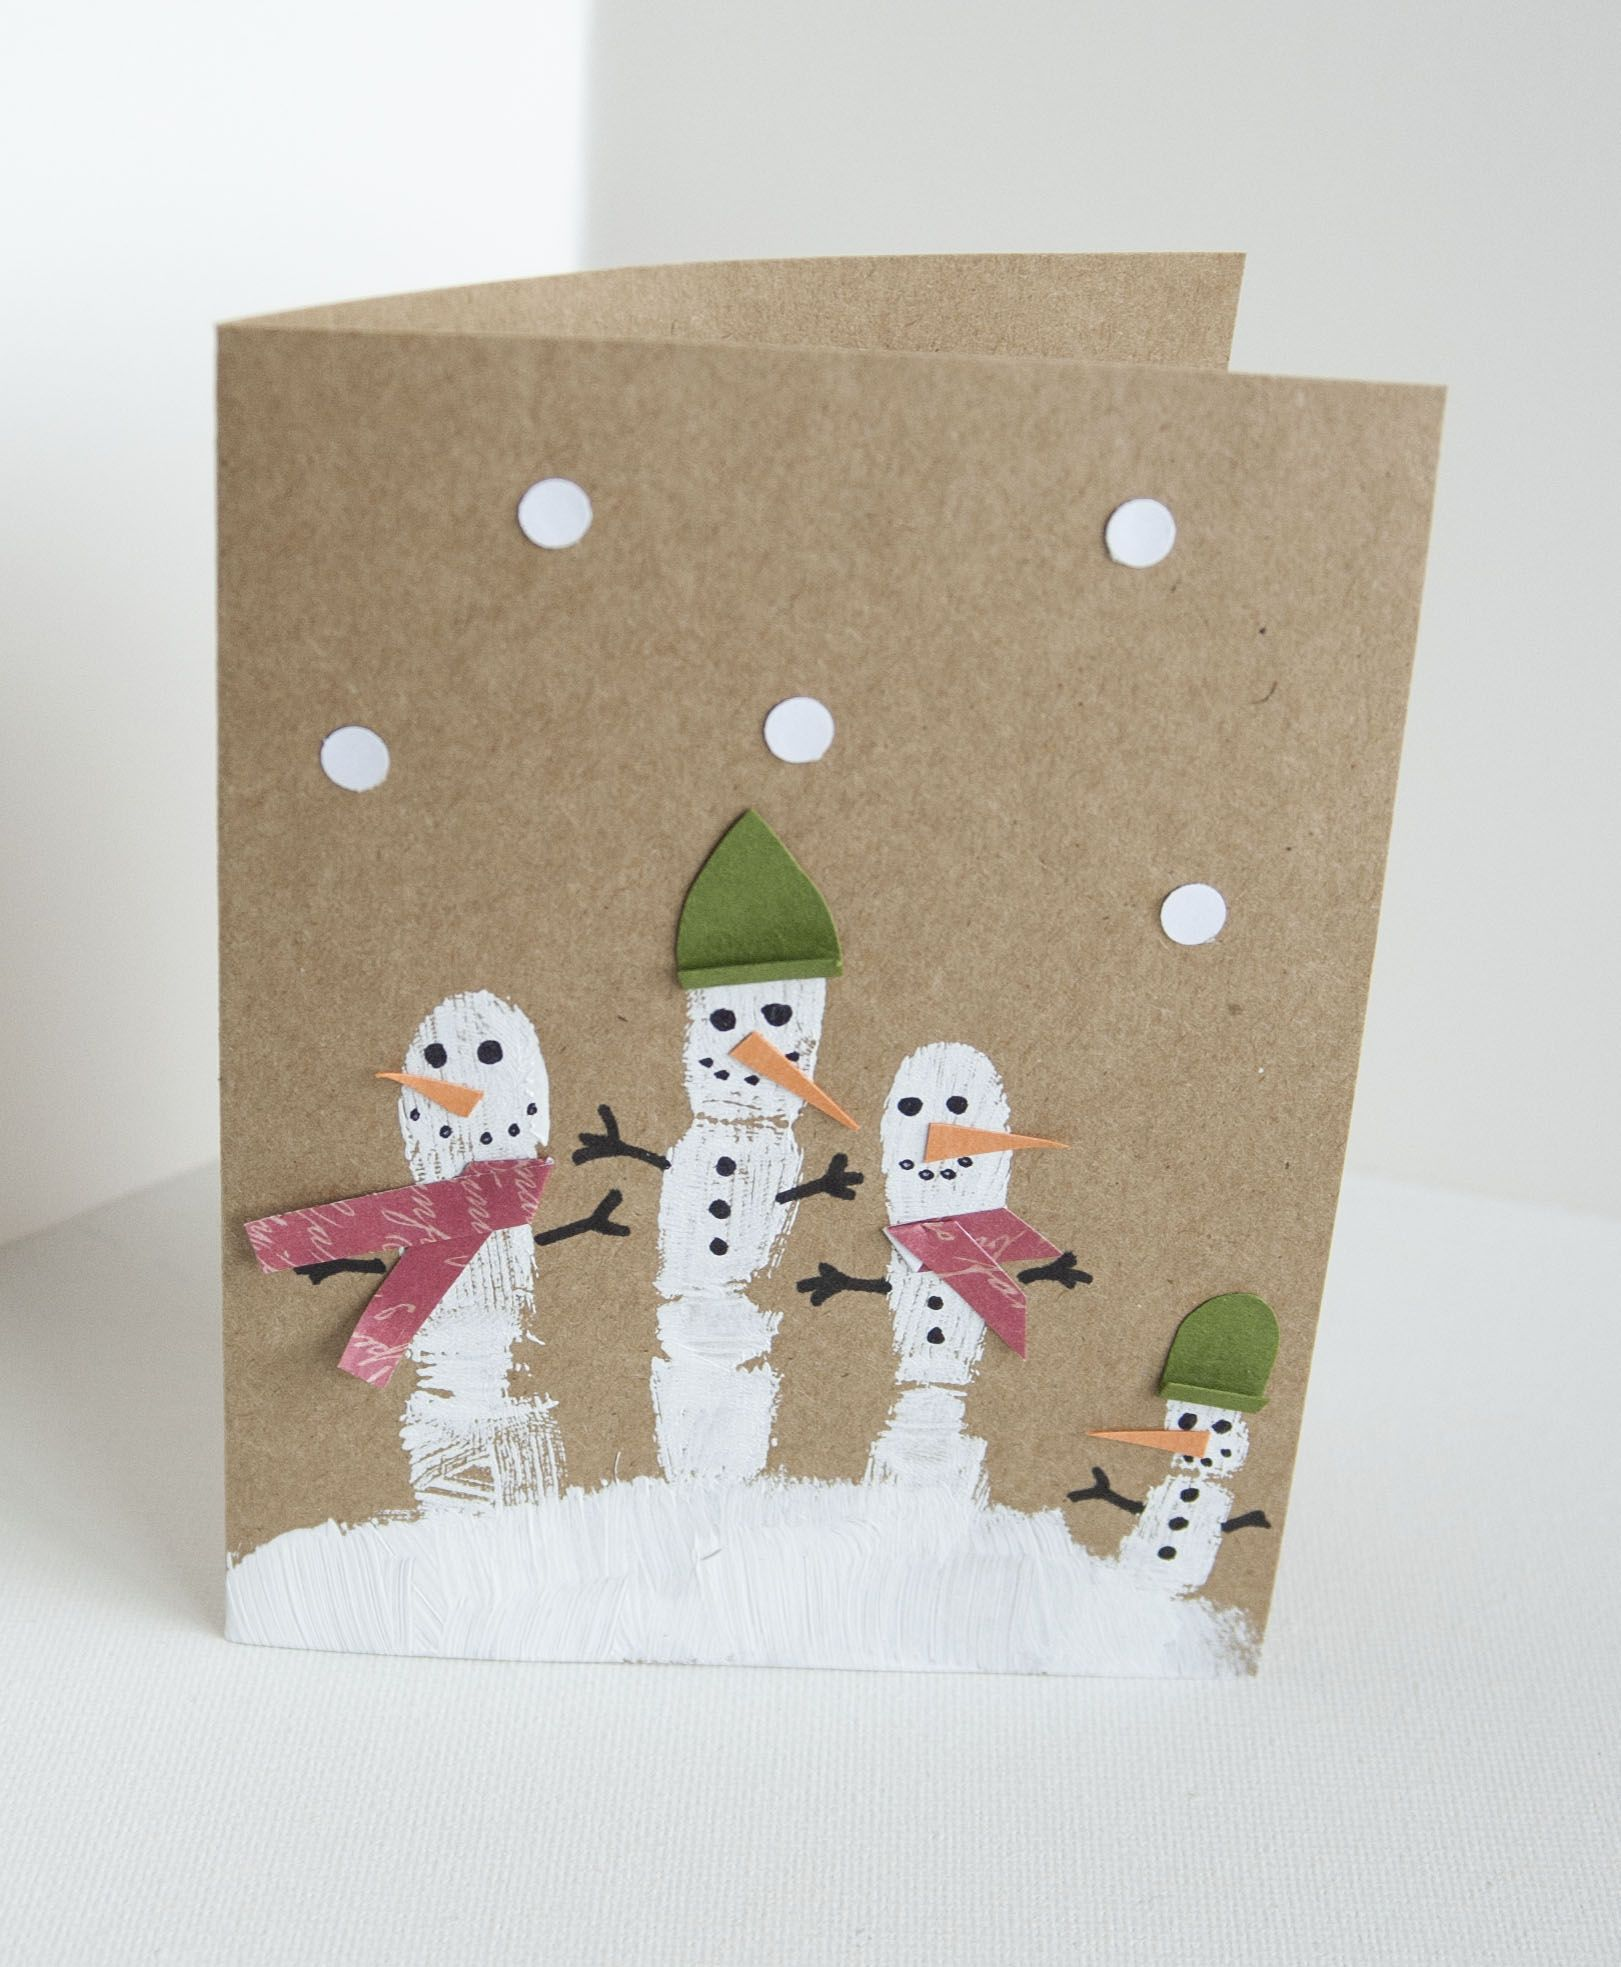 15 Awesome Christmas Cards To Make With Kids You Baby Me Mummy Christmas Card Crafts Fun Christmas Cards Christmas Cards To Make